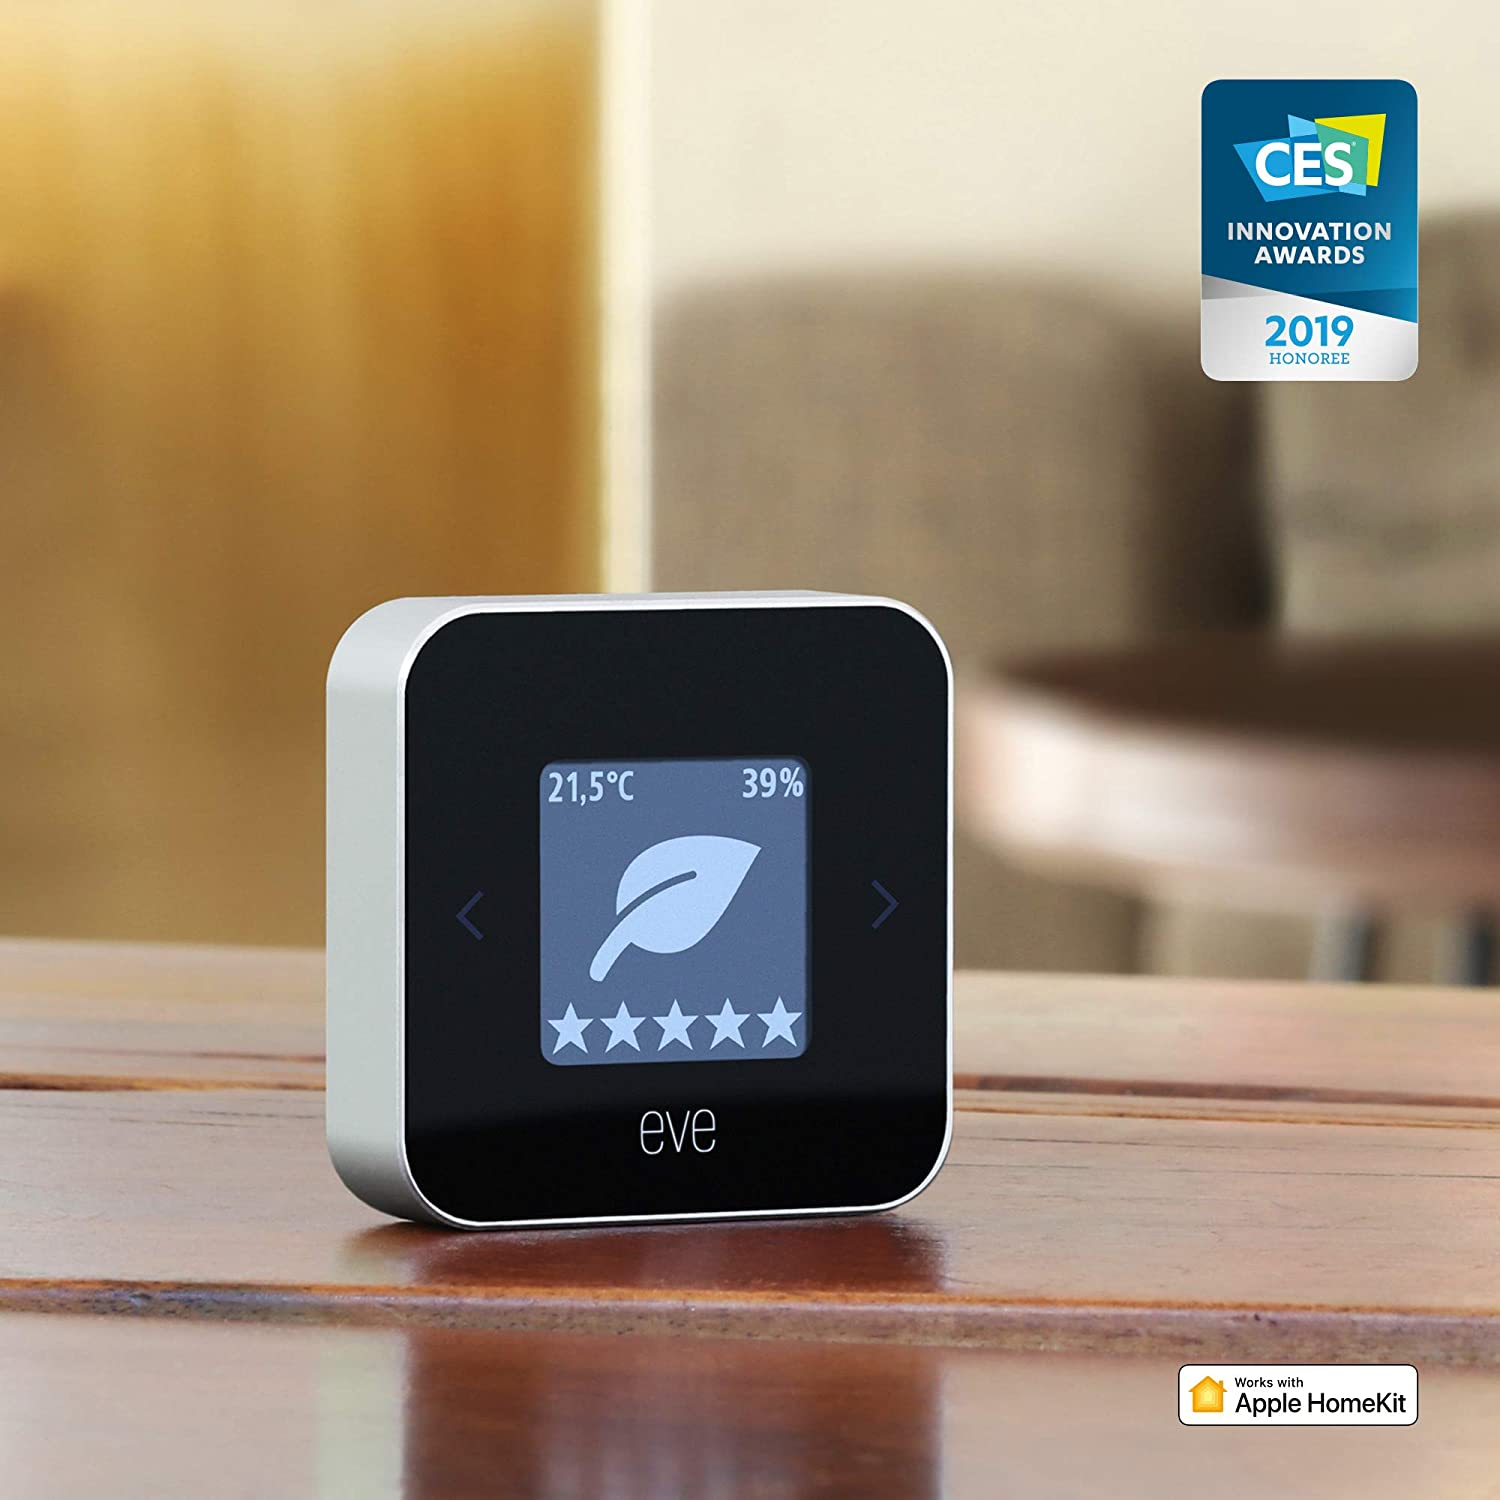 1c0347072a9745 Eve Room - Indoor Air Quality Monitor for tracking VOC